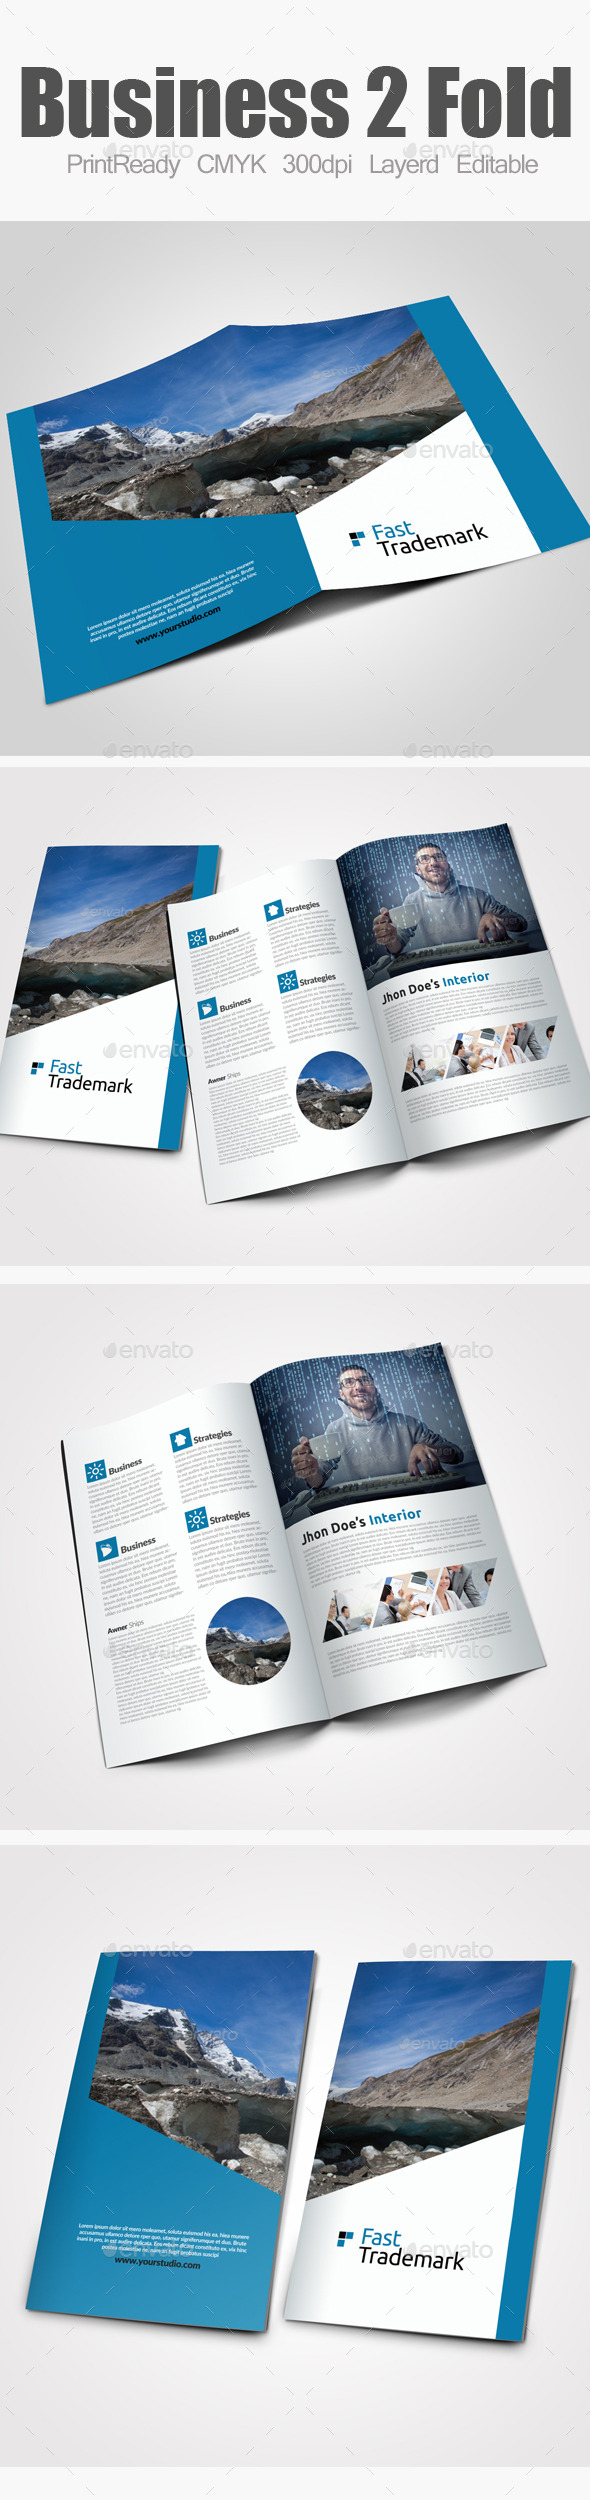 GraphicRiver Bi Fold Business Brochure 9133319